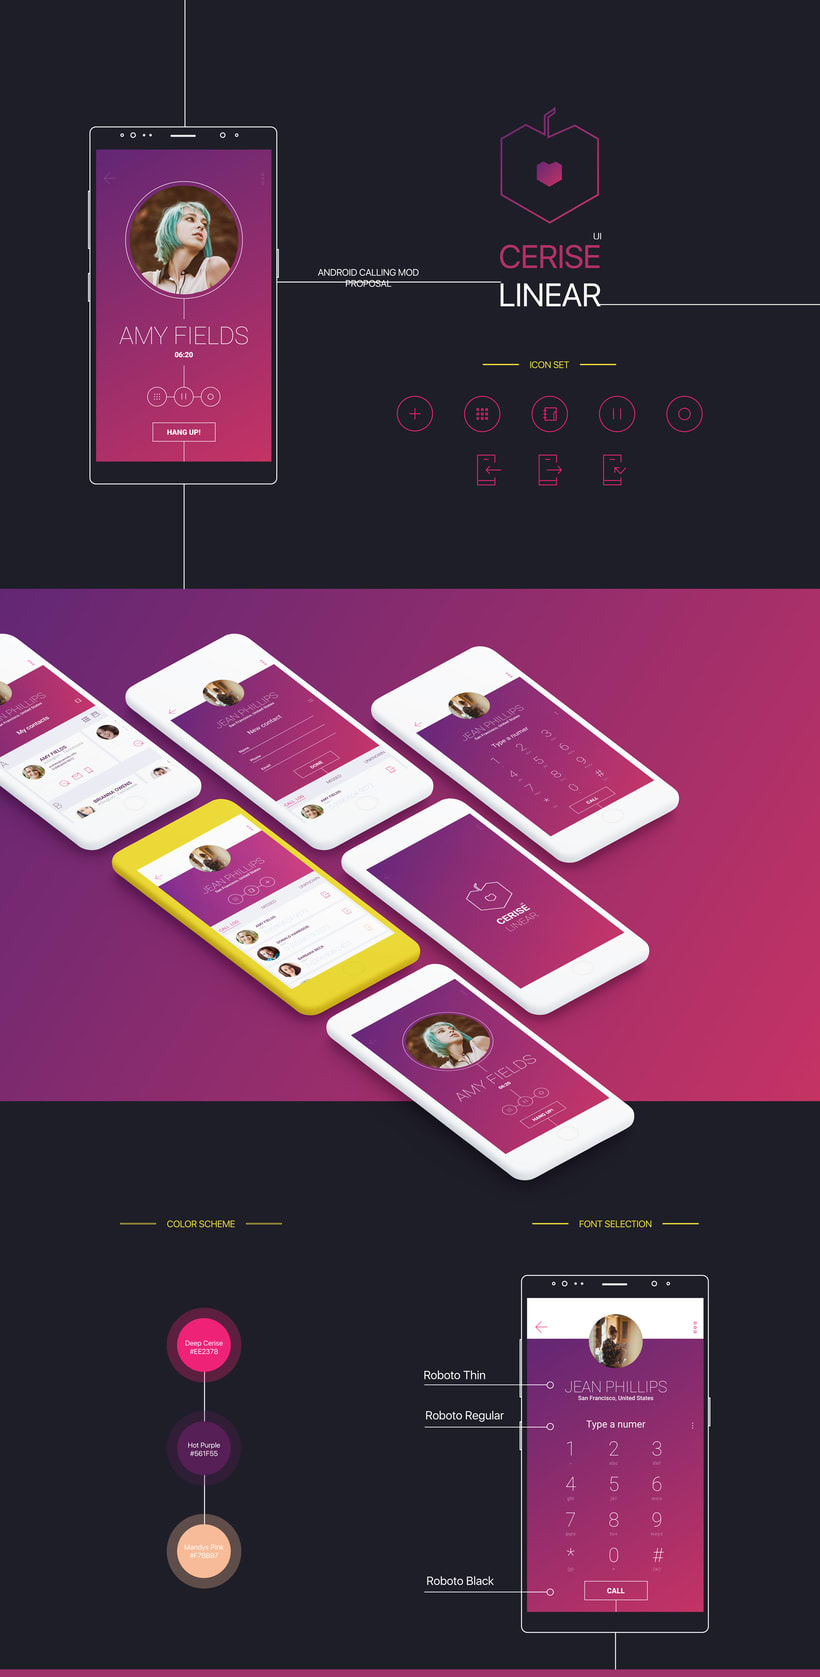 Cerise for Android: Linear concept -1